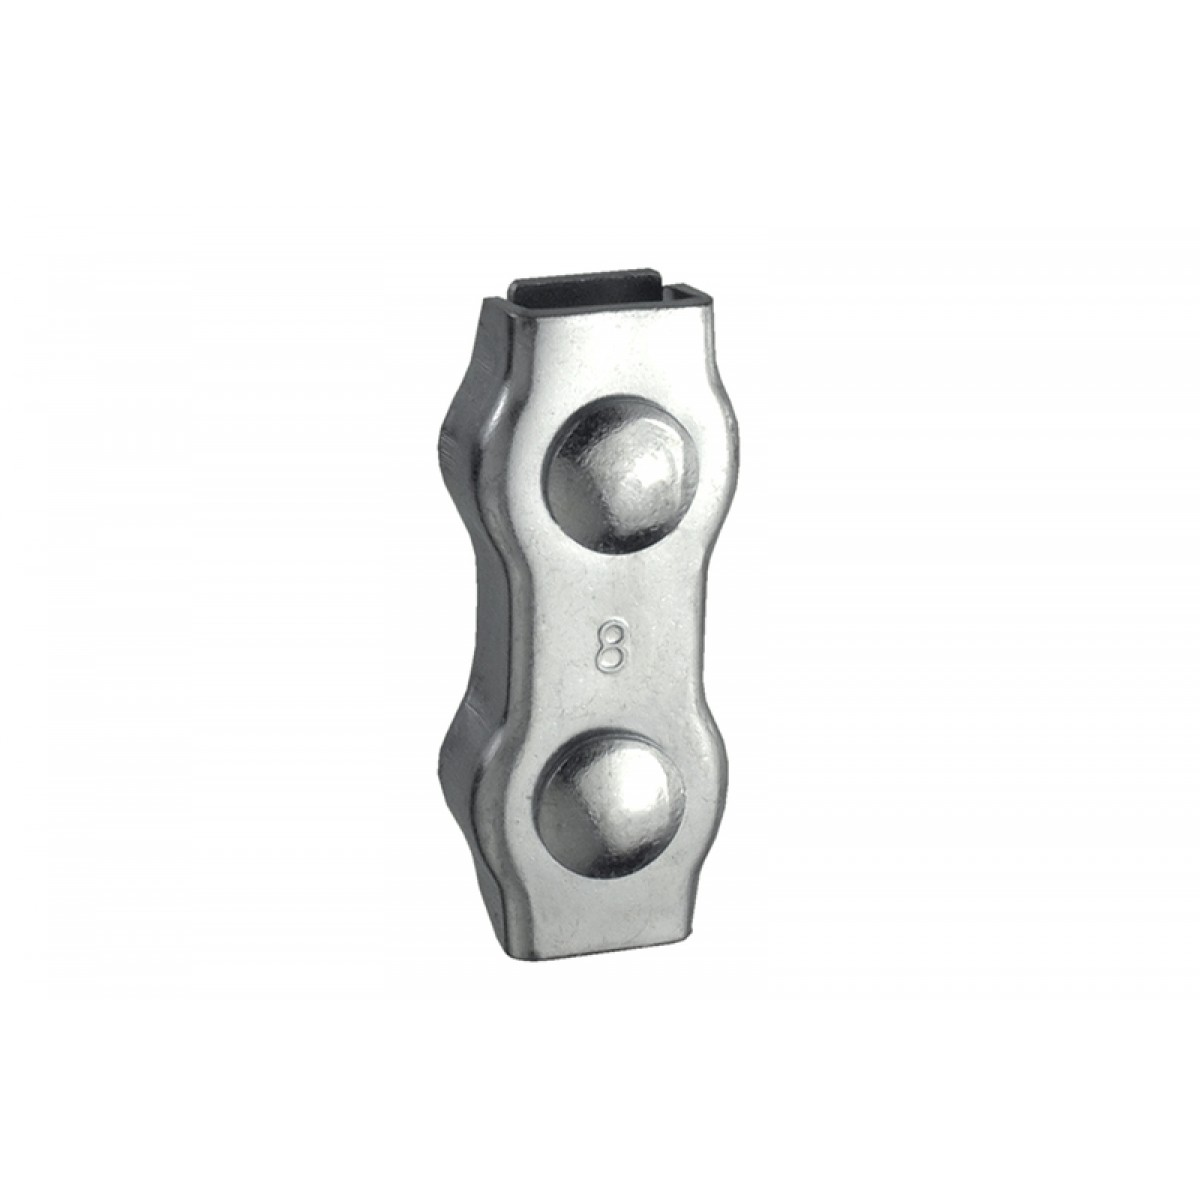 Duplex Clamps (2) Galvanised for Ropes up to 3mm